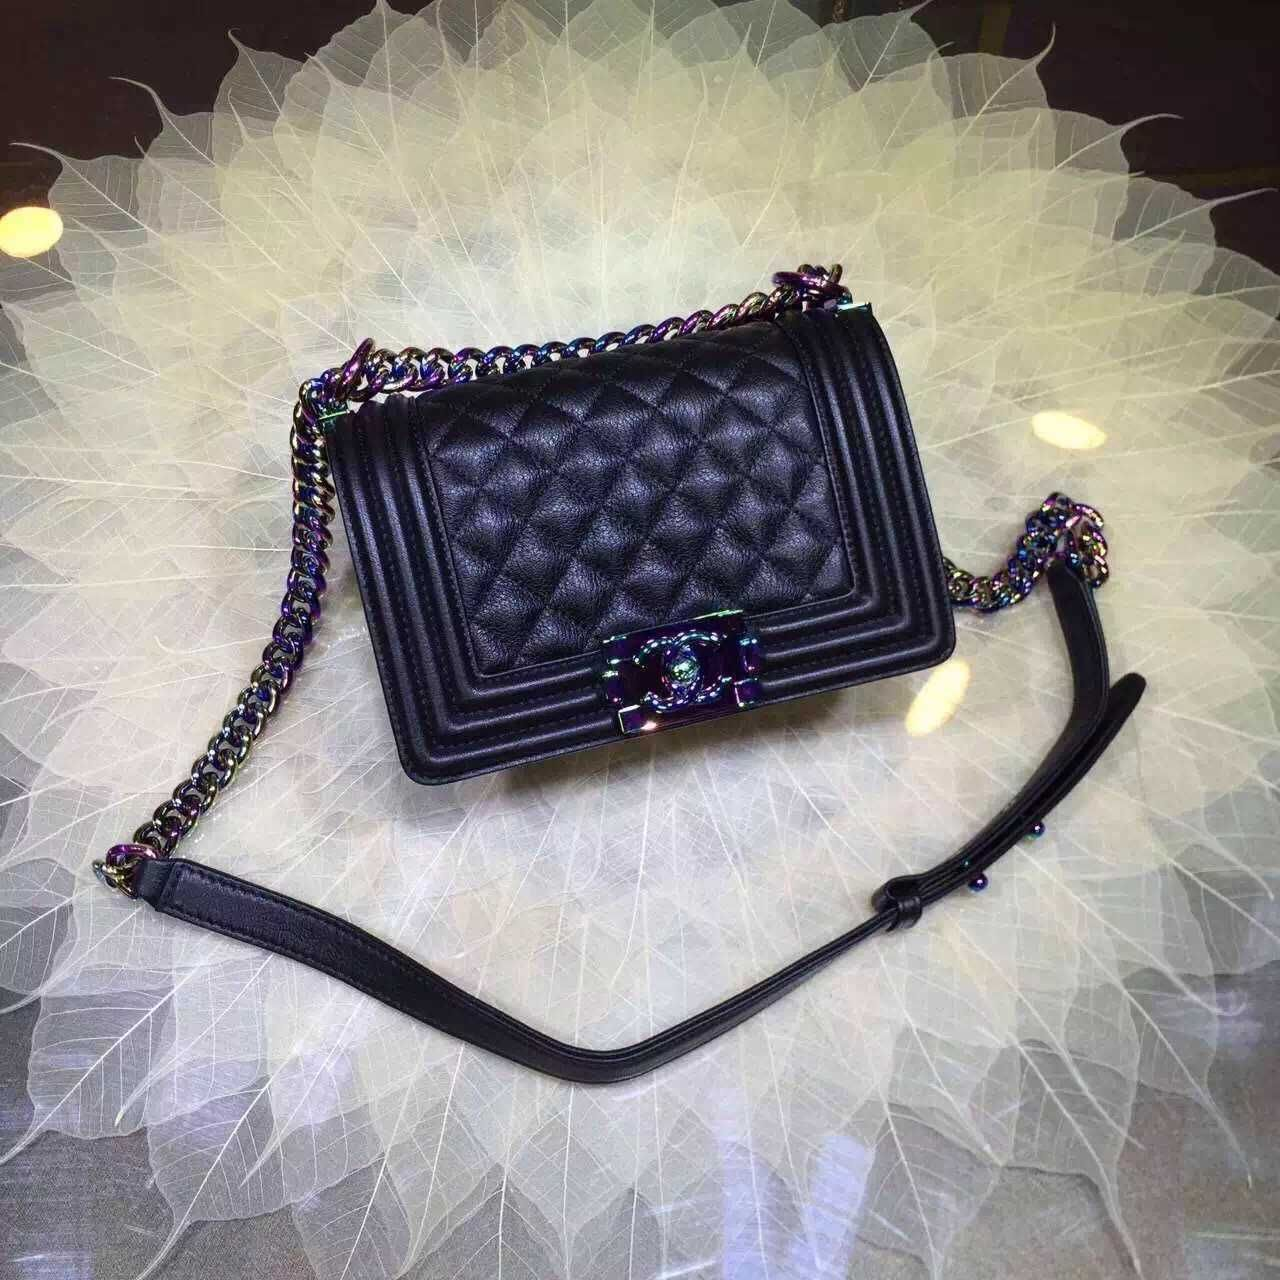 Chanel bag id forsaleayybags where to buy chanel